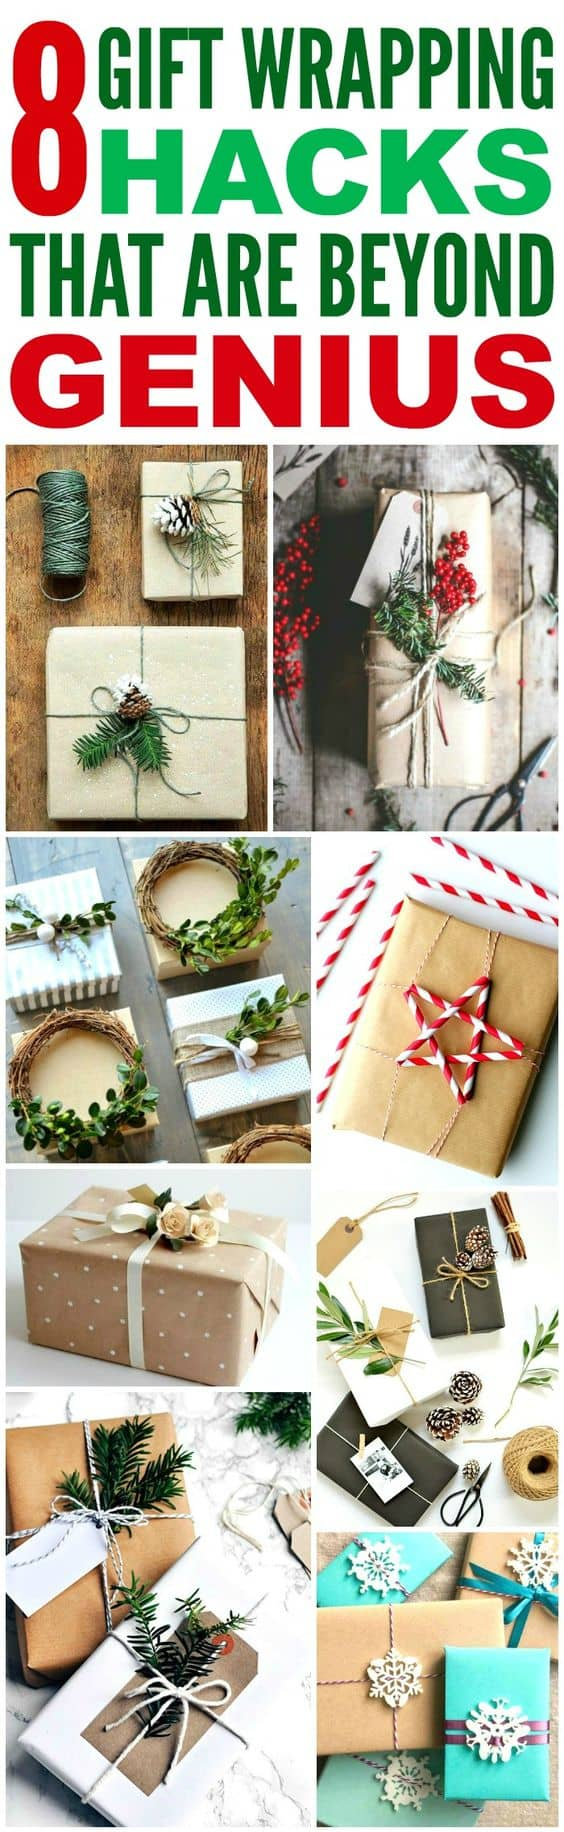 8giftwrapping